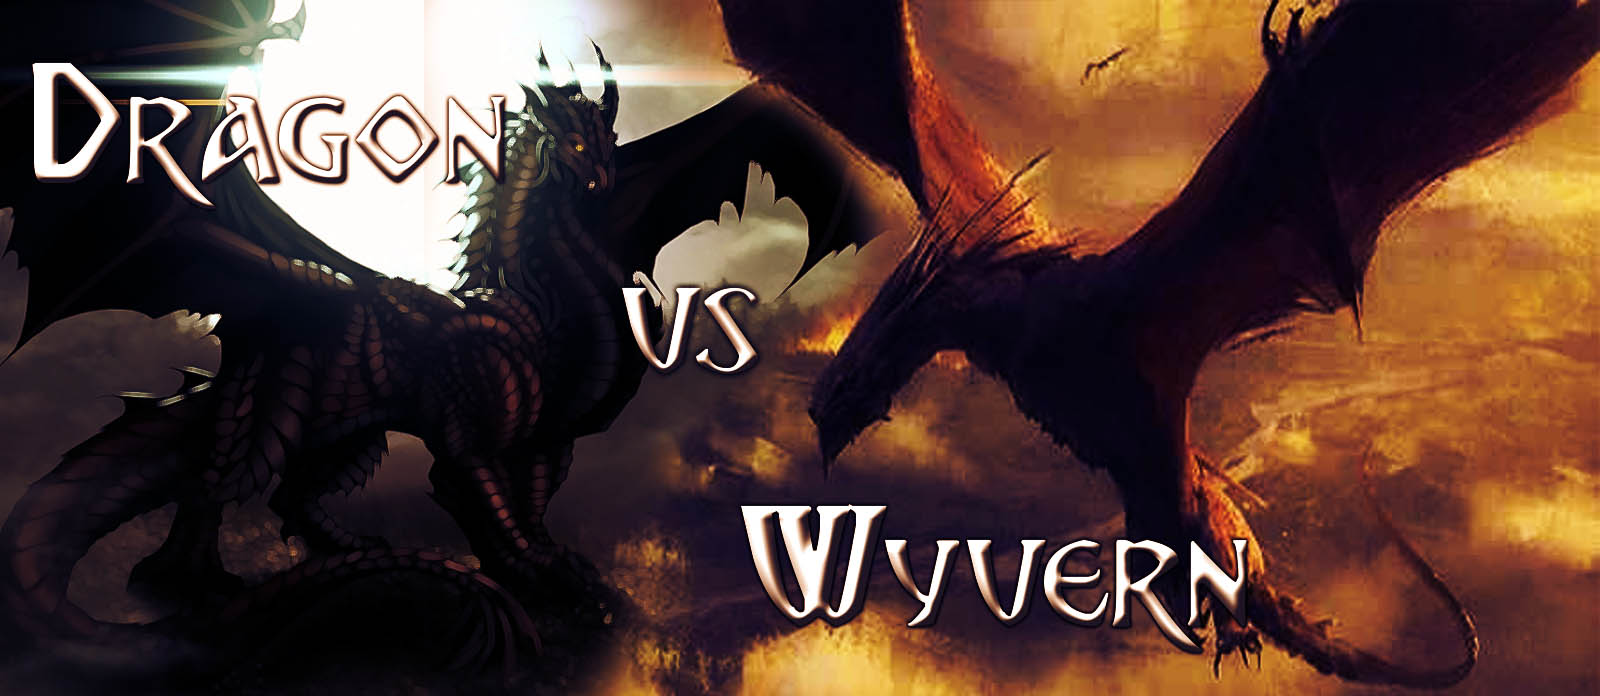 Dragon vs Wyvern